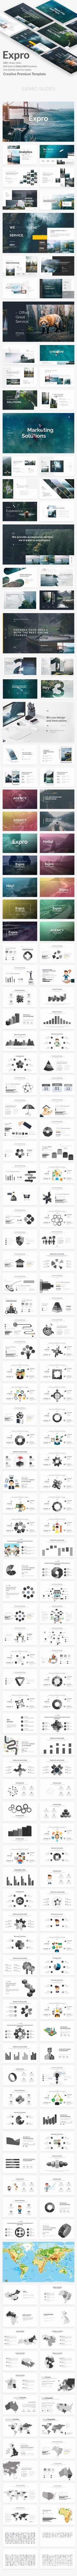 Buy Expro Creative Design Powerpoint Template by bypaintdesign on GraphicRiver. Features: Wide Screen Size Free Font Used unique slides Creative Slides Easy Customize Us. Powerpoint Templates Download, Creative Powerpoint Templates, Keynote Template, Presentation Design, Presentation Templates, Presentation Slides, Power Point Template, Slide Template, Brochure Layout